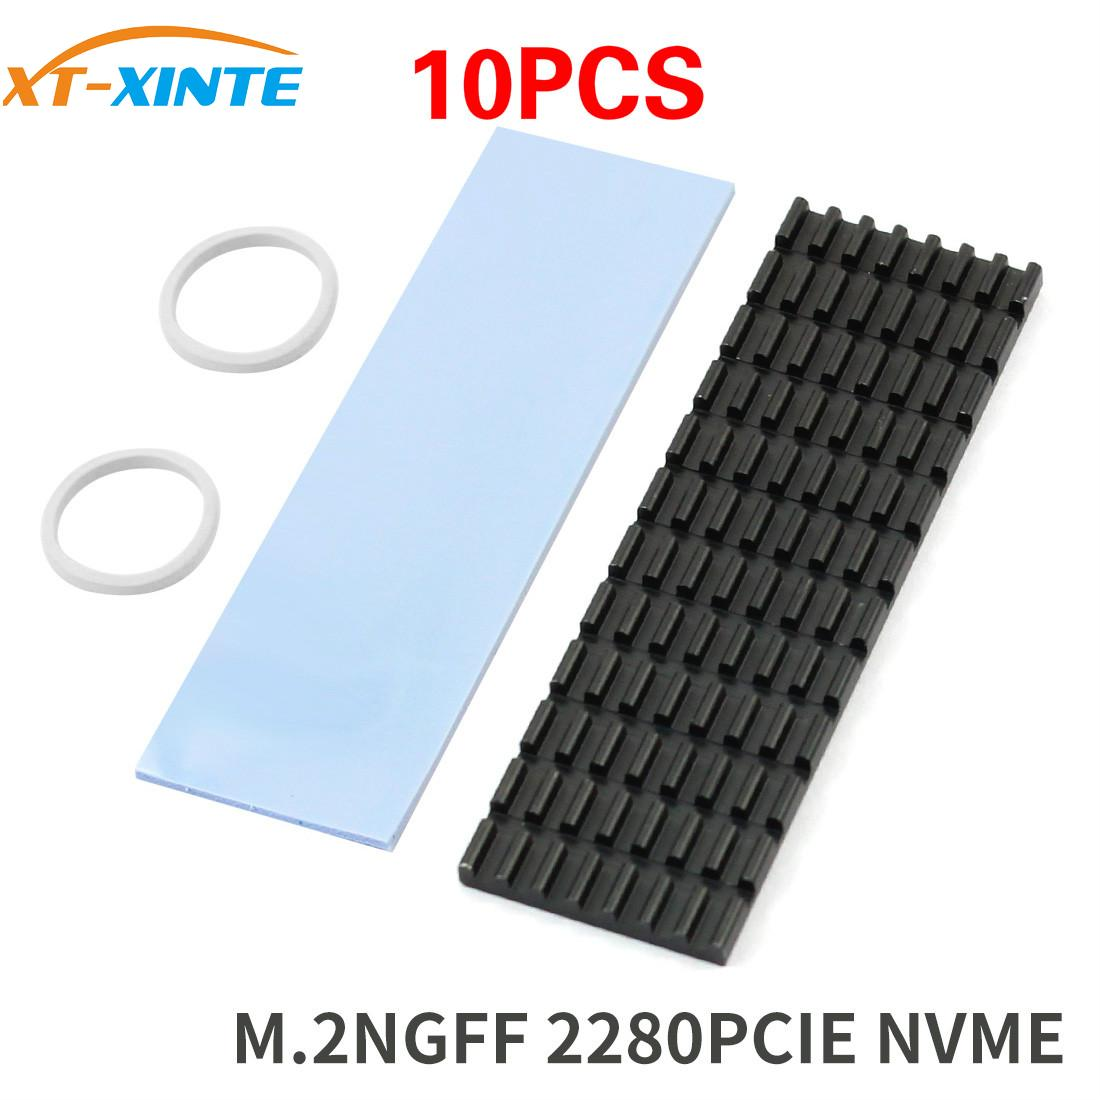 10PCS Upgraded Heatsink Cooler Heat Sink Cool Fin Thermal Conductive Adhesive For M.2 NGFF 2280 PCI-E NVME SSD Thickness 3/6mm